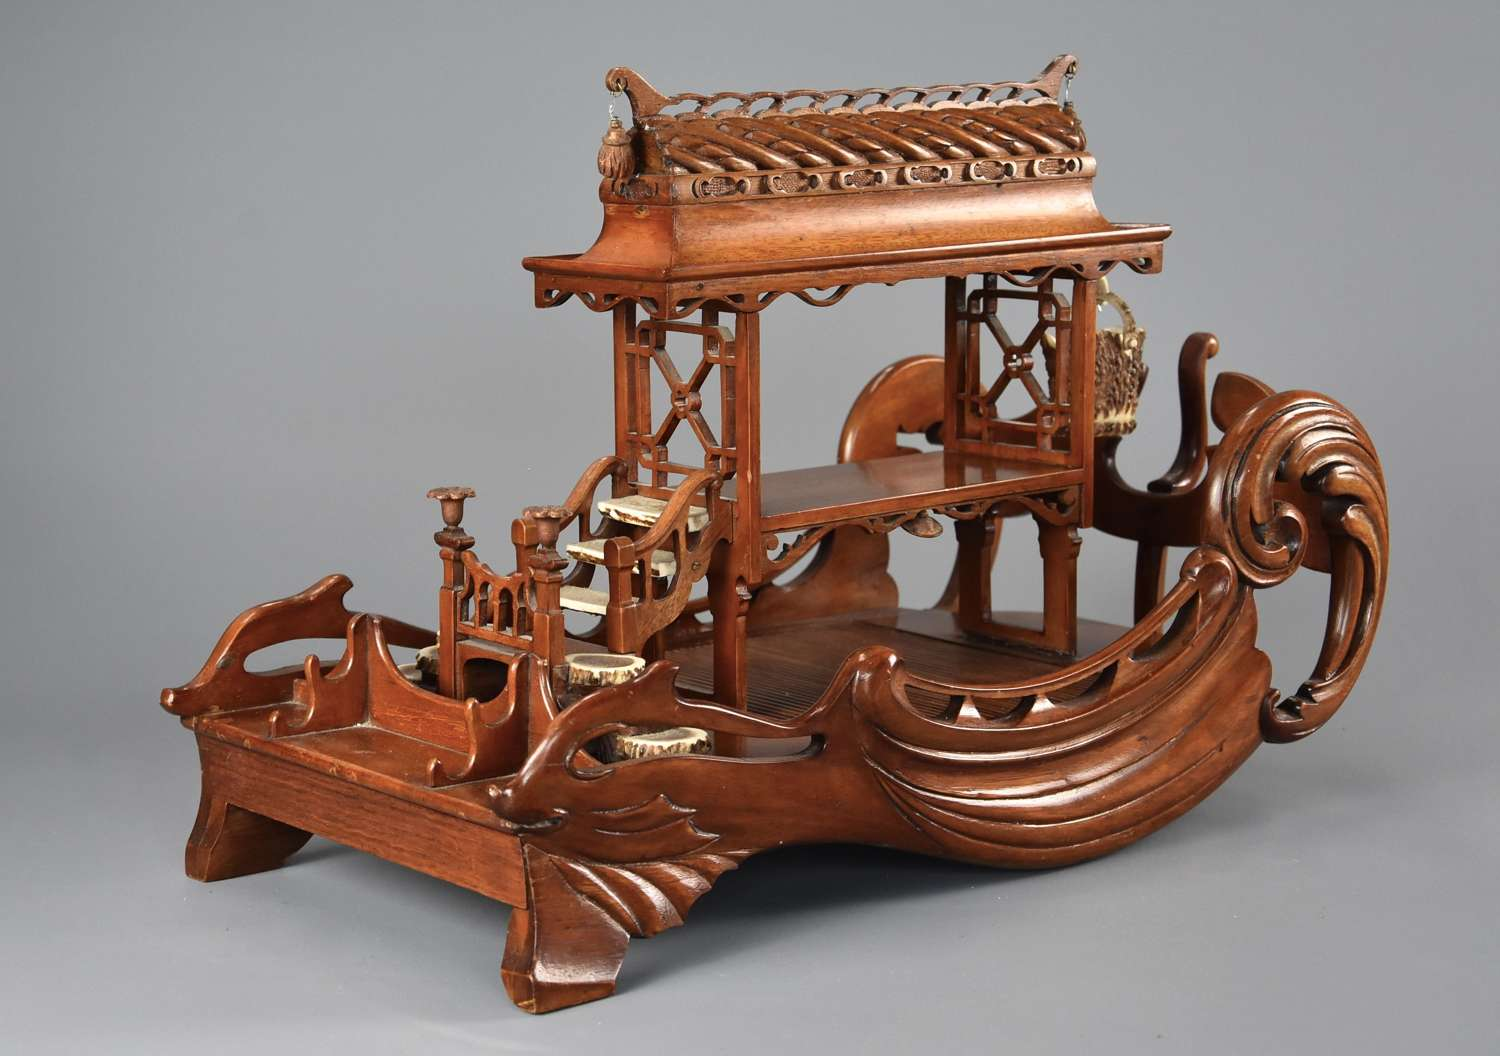 Late 19th century Asian model of a pagoda boat, possibly a desk stand